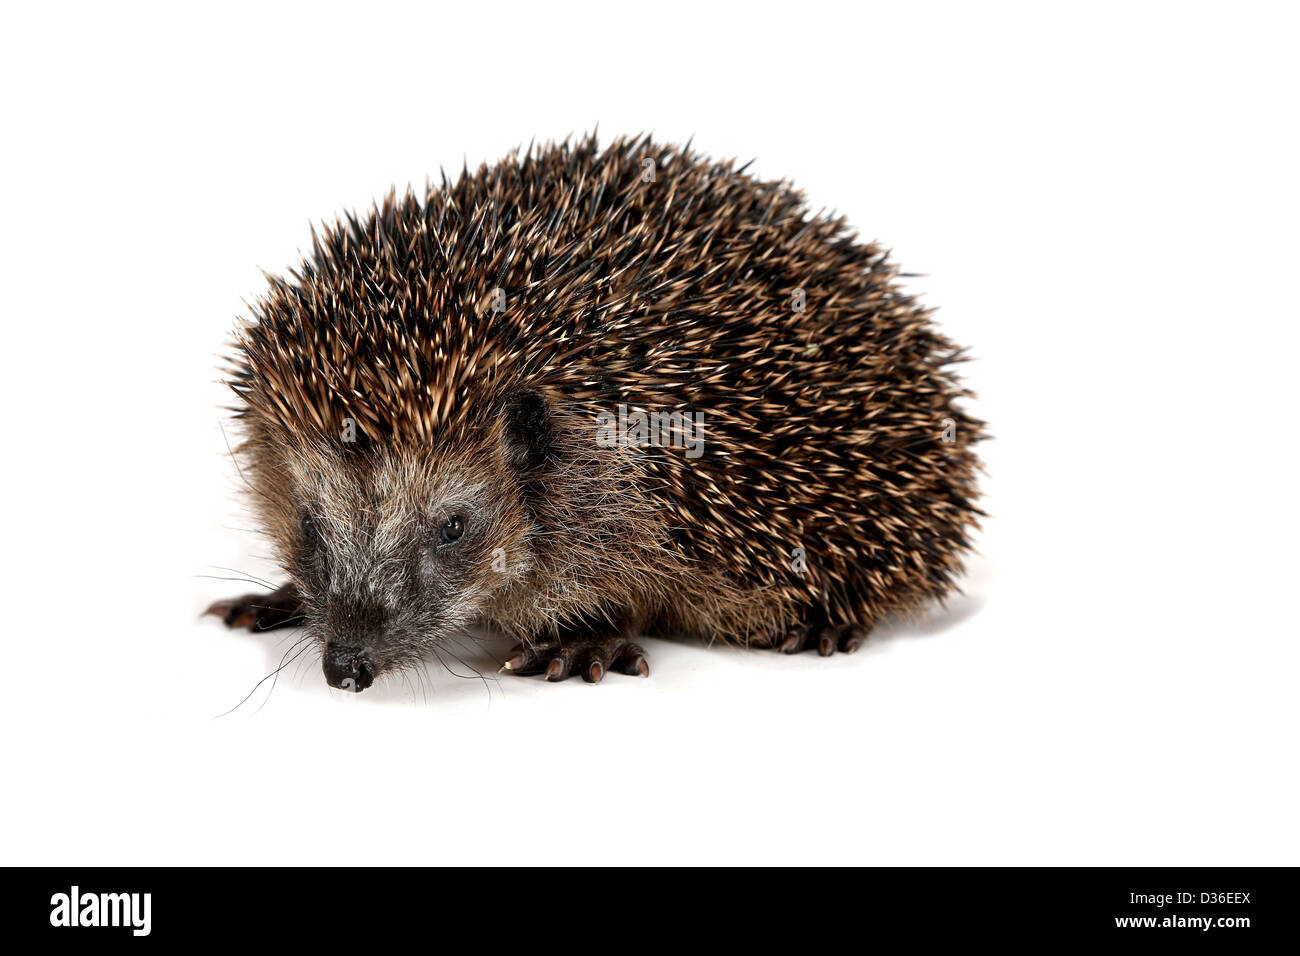 Adorable hedgehog standing and looking at the beholder Stock Photo